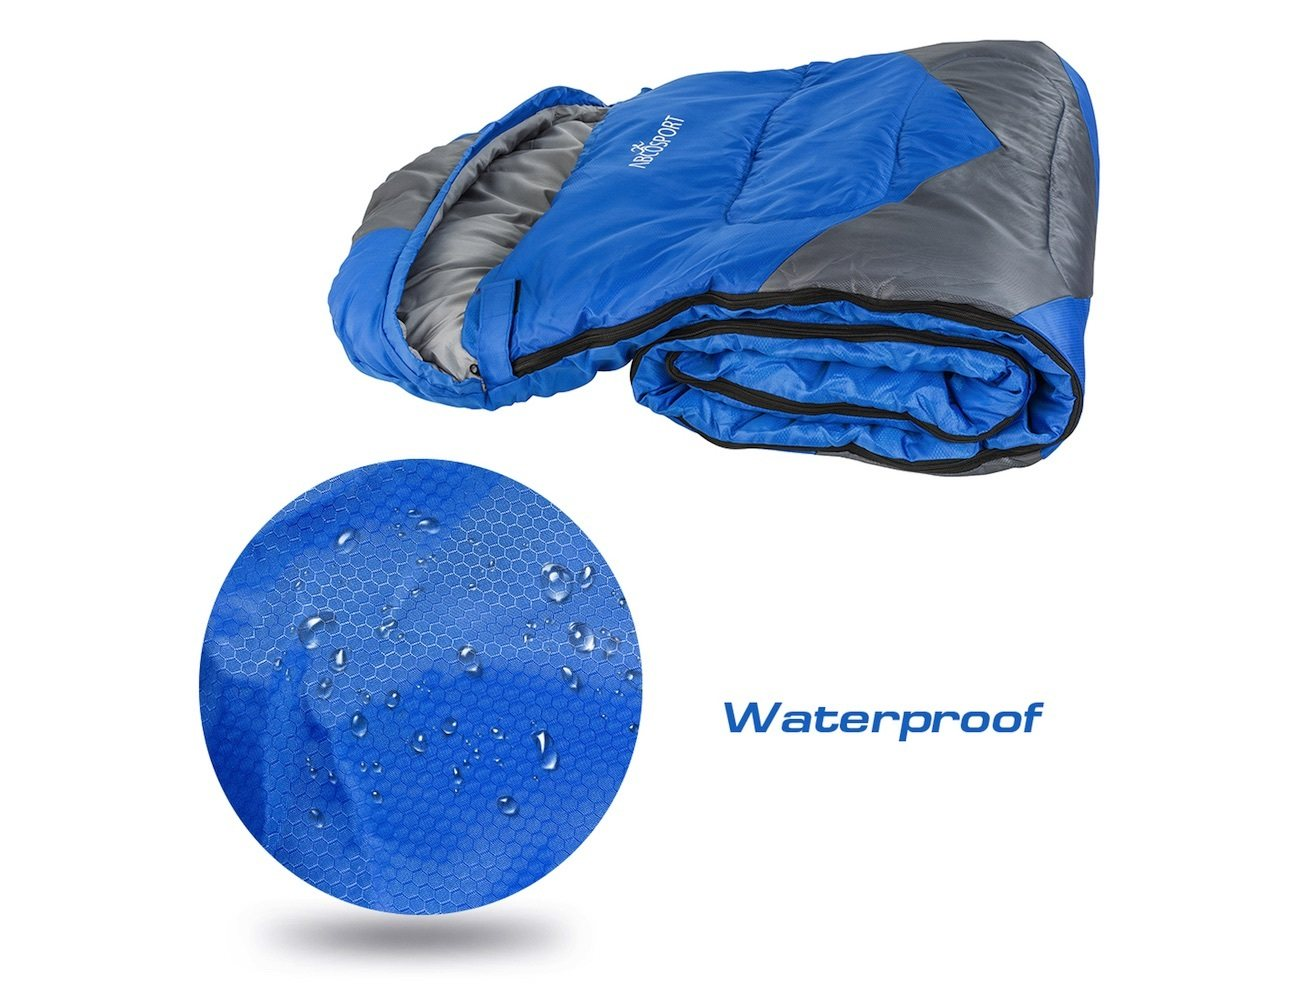 Portable Sleeping Bag by Abco Tech